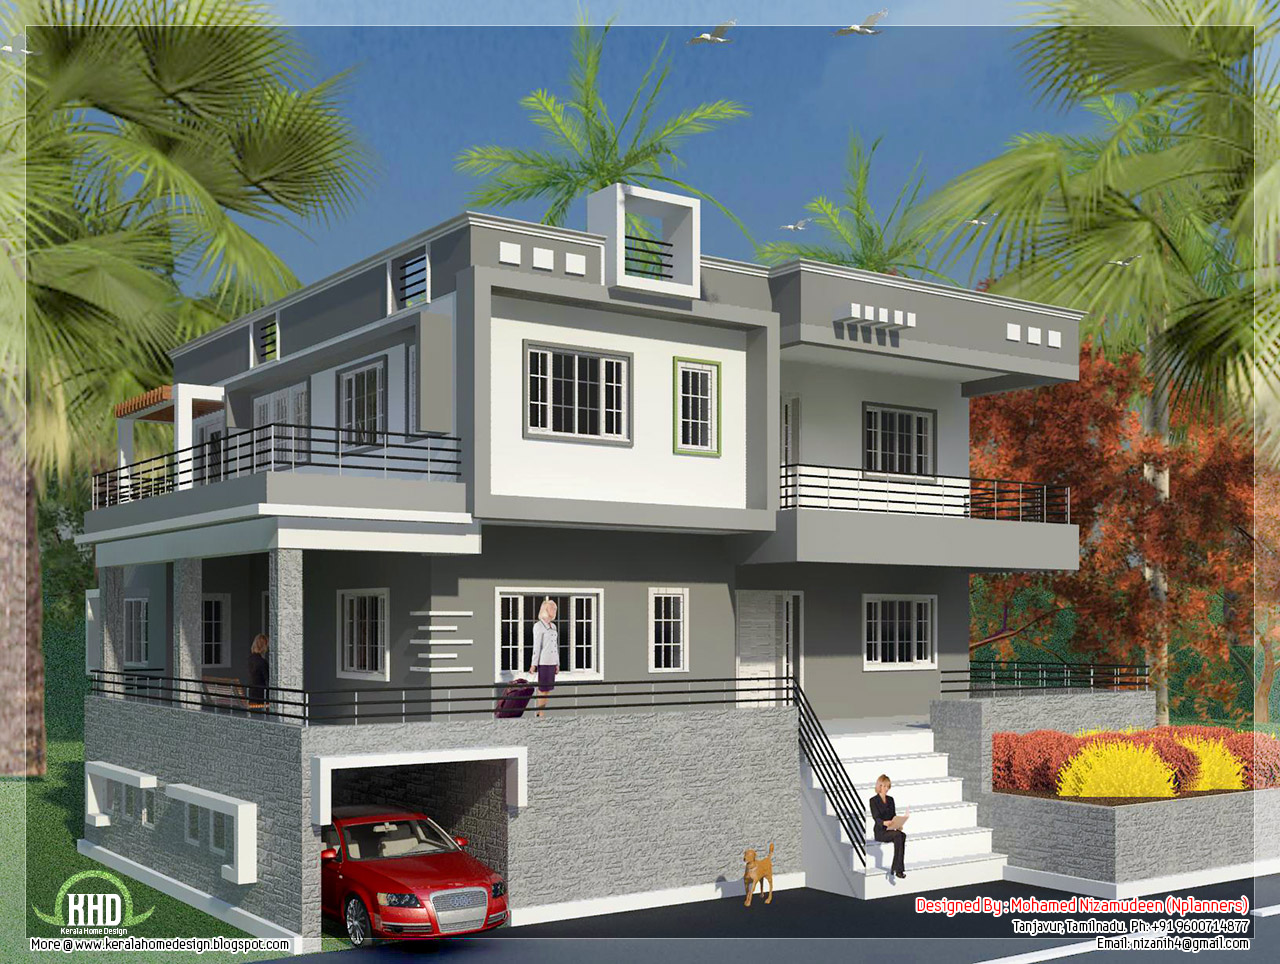 North indian style minimalist house exterior design Indian home exterior design photos